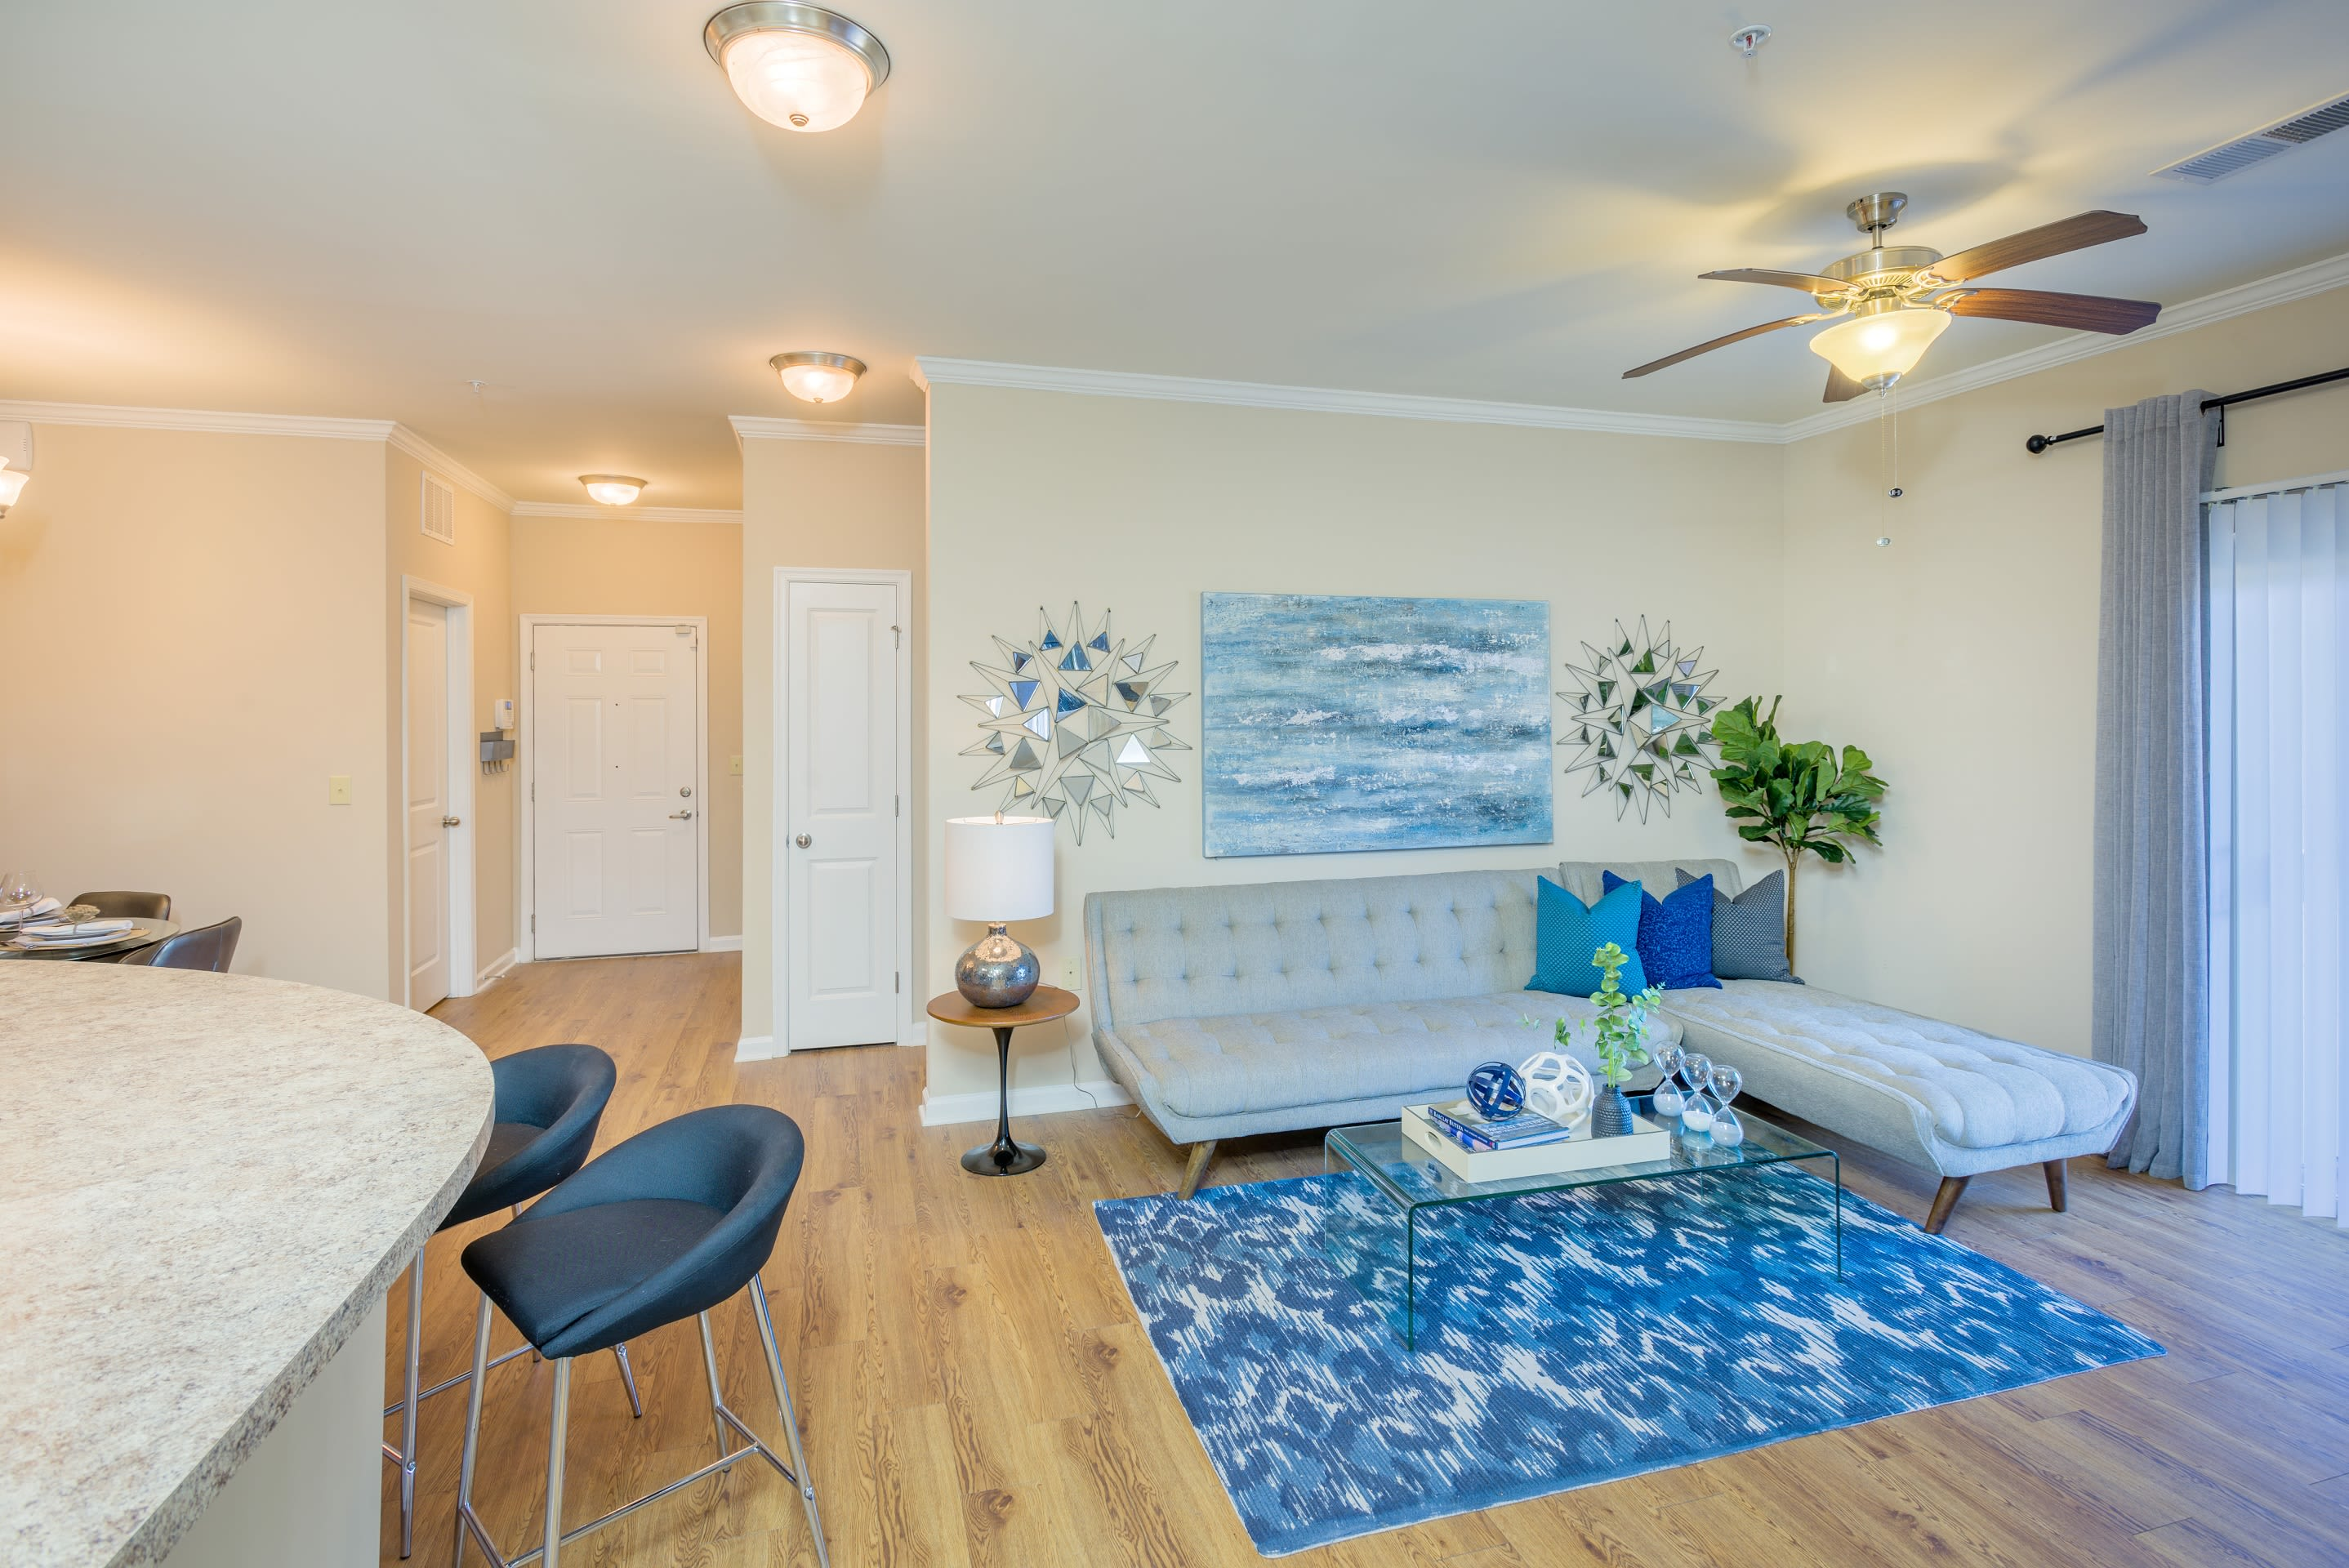 Apartment interior with hardwood flooring at Arbor Village in Summerville, South Carolina